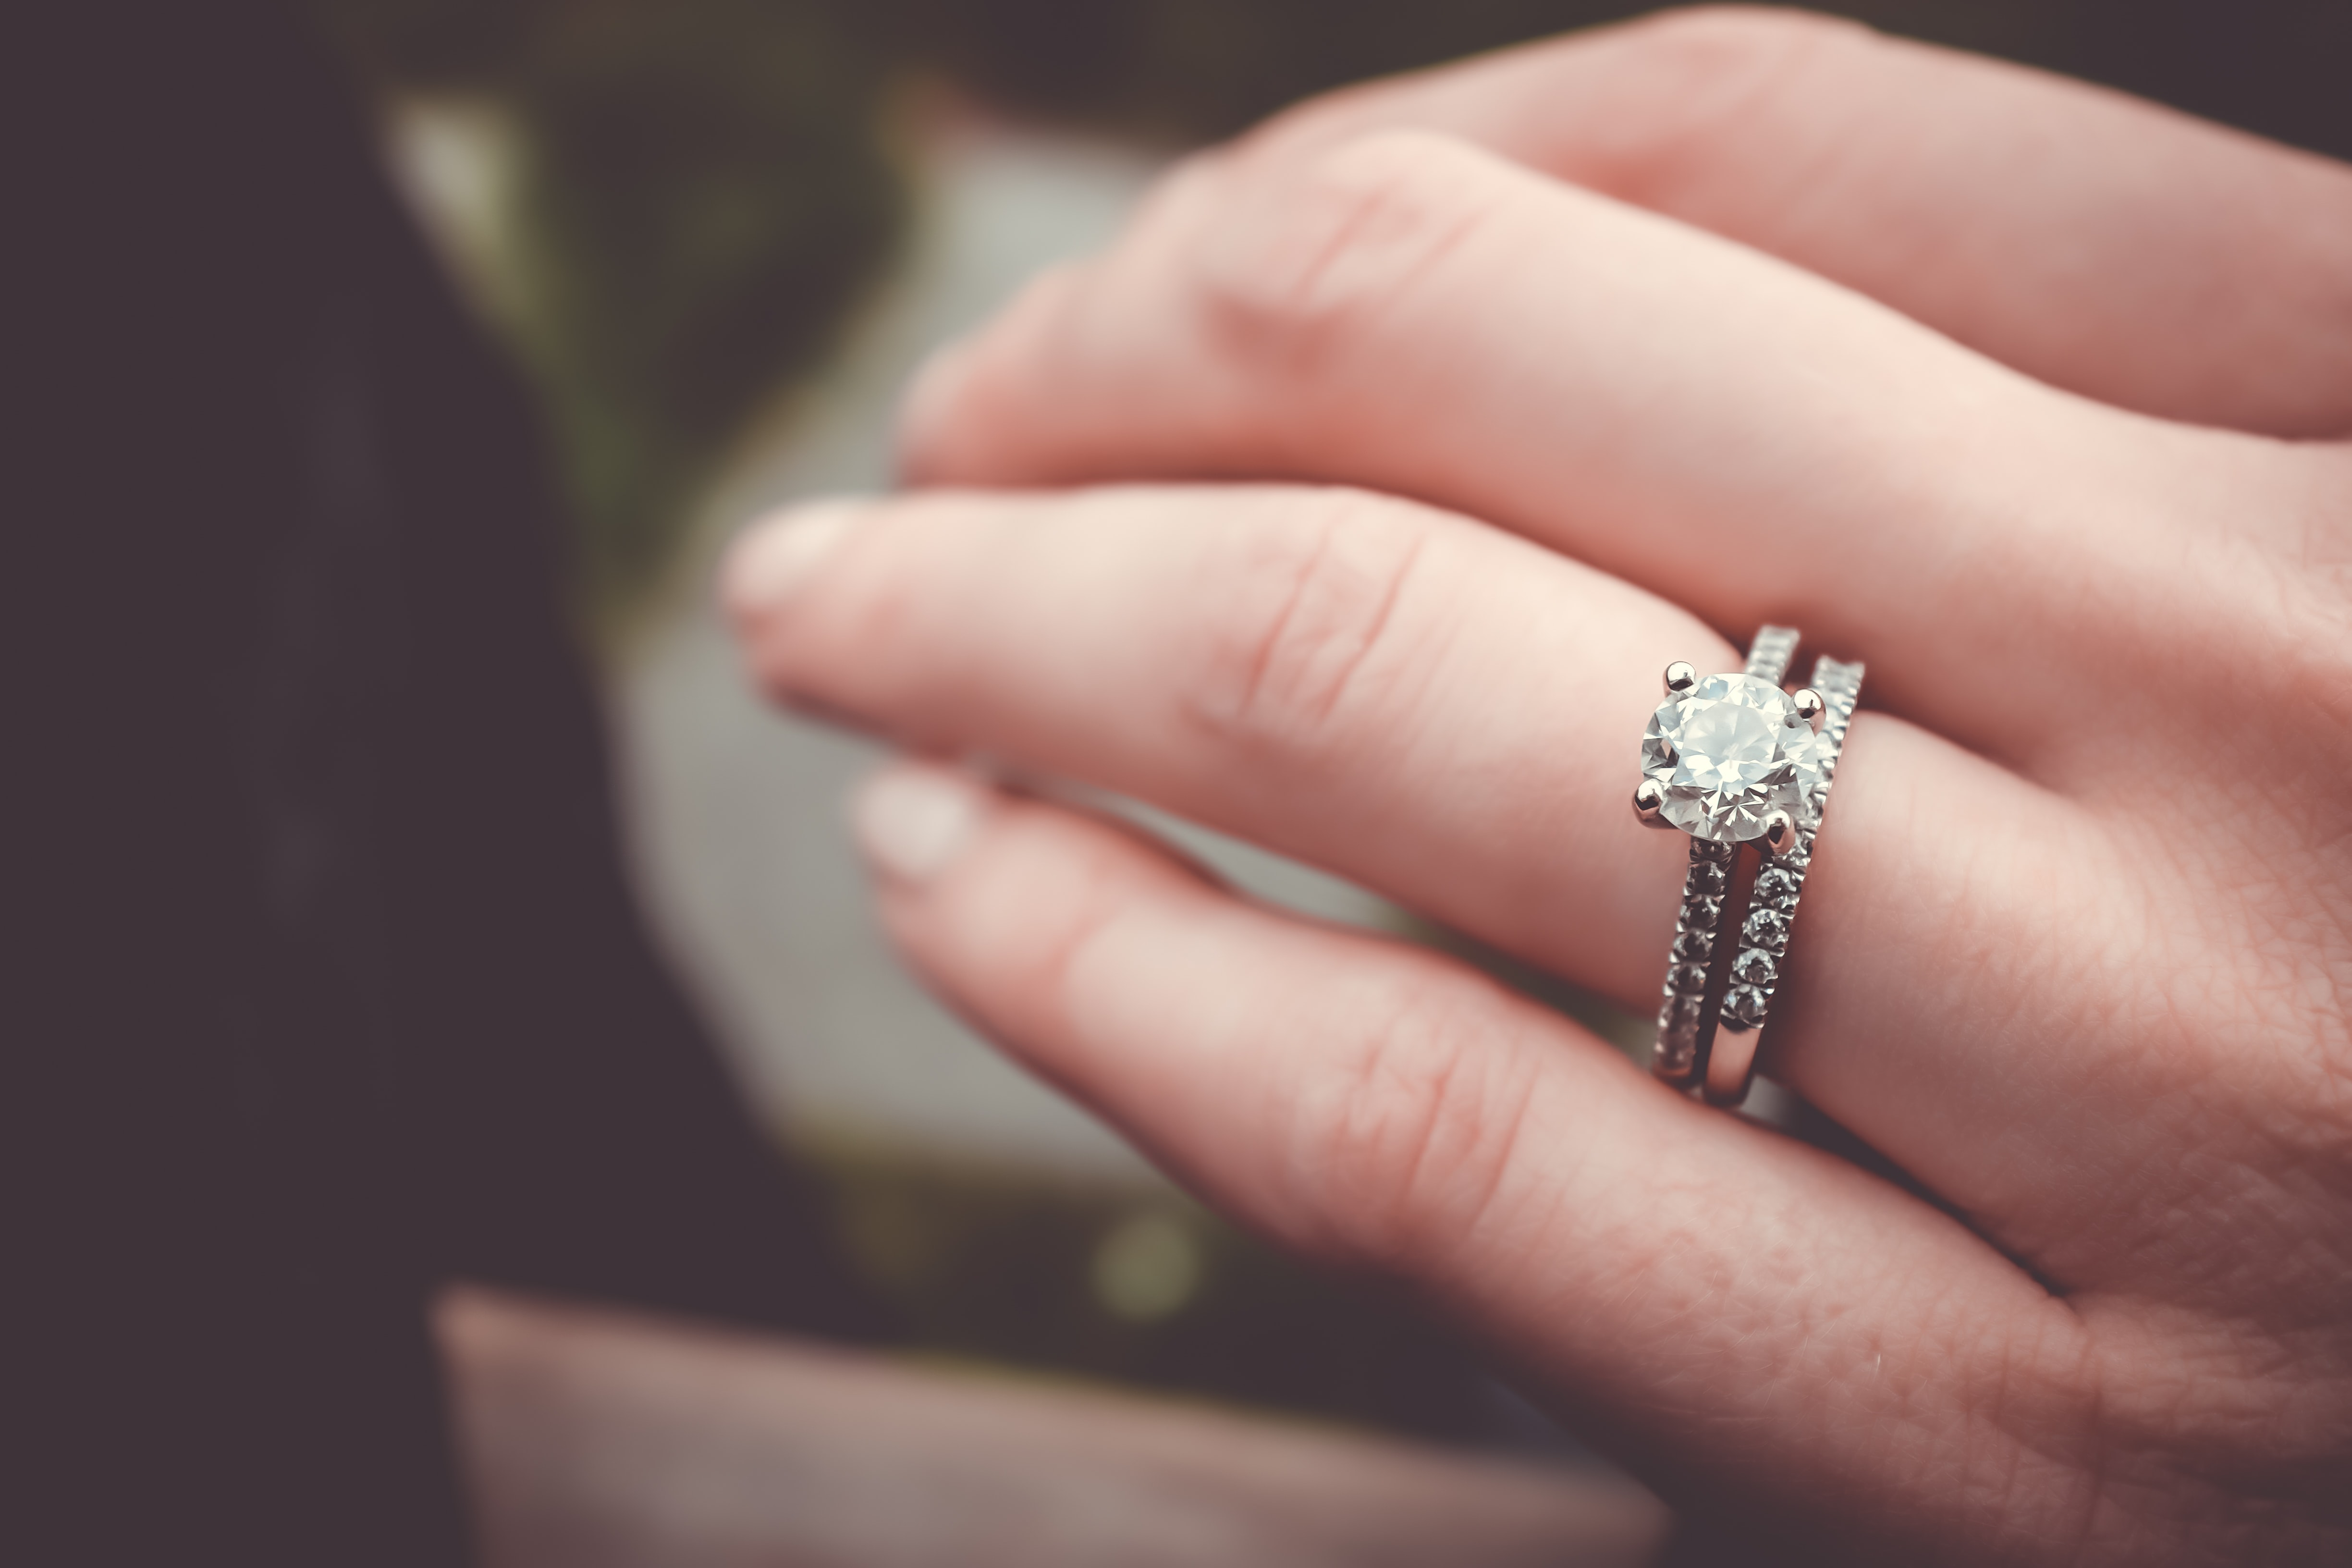 Superb Engagement/Rings | 6 Best Free Engagement Ring, Wedding Ring, Ring, And Hand  Photos On Unsplash